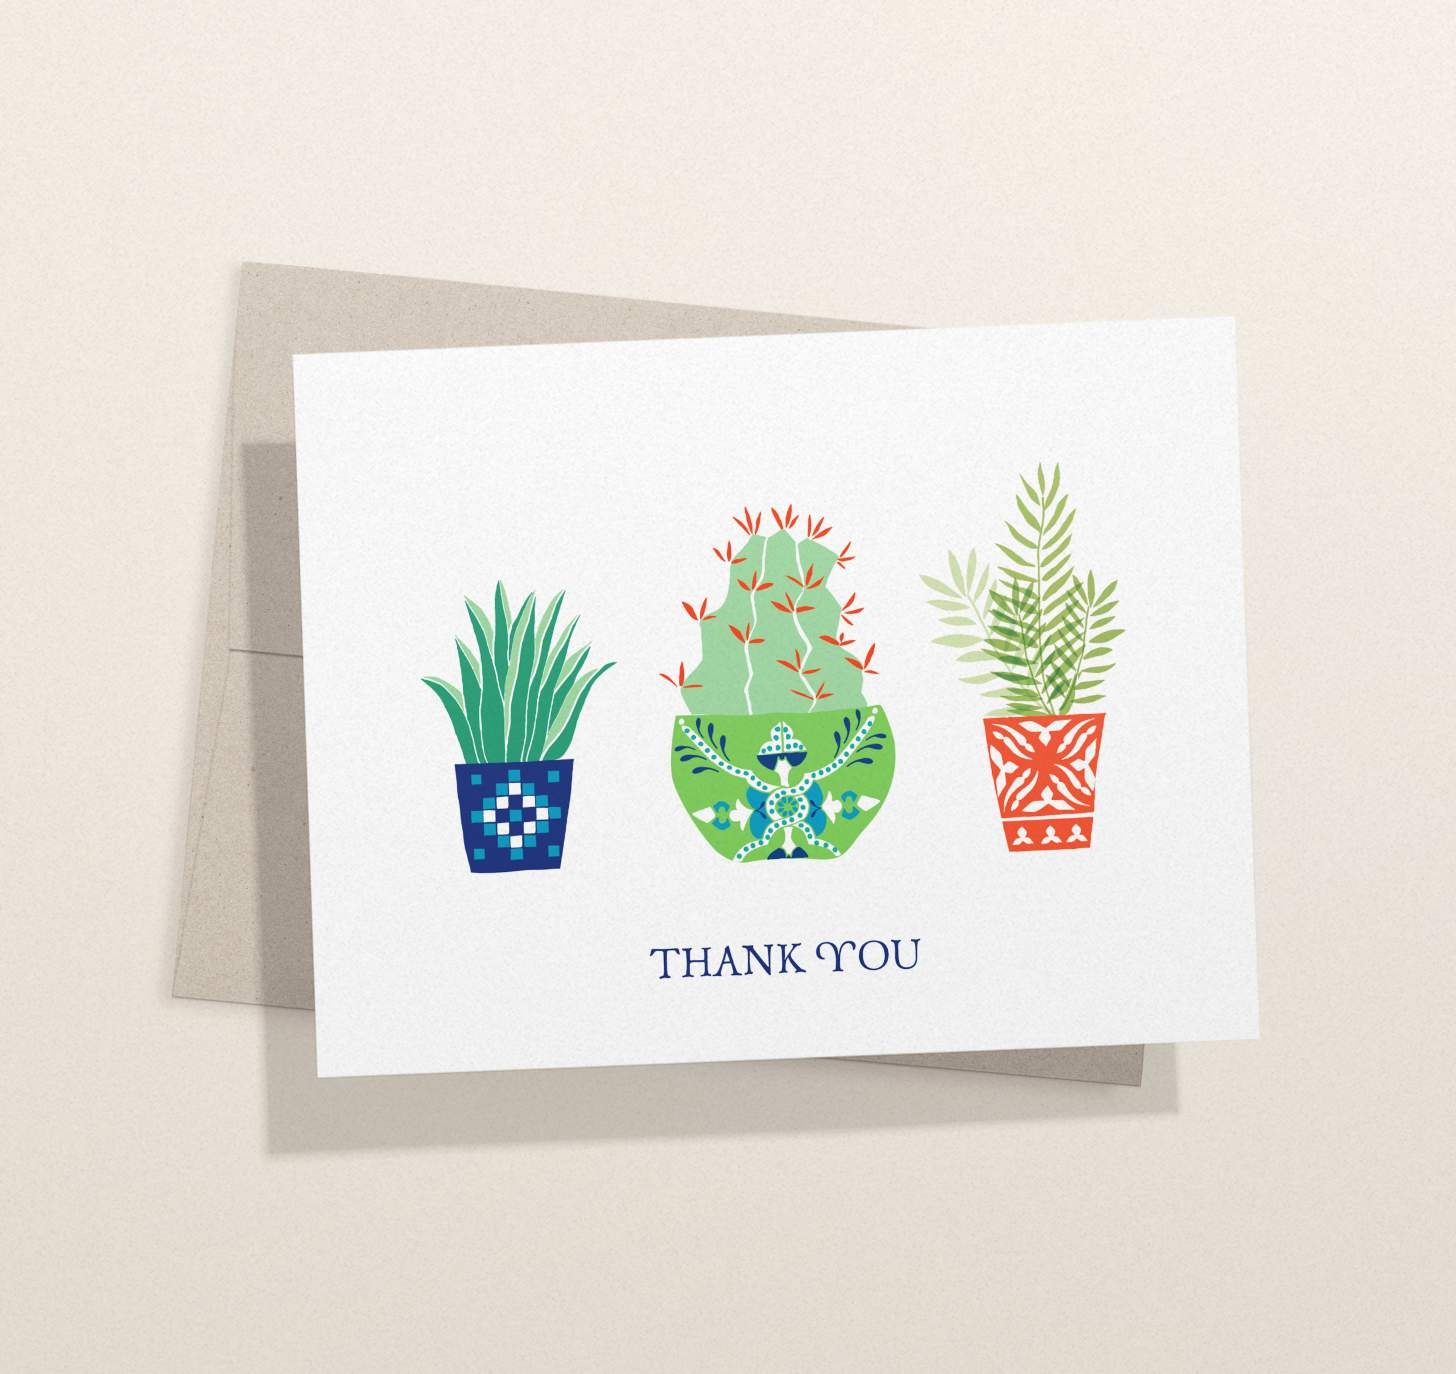 Three colorful cactus plant design card with envelope